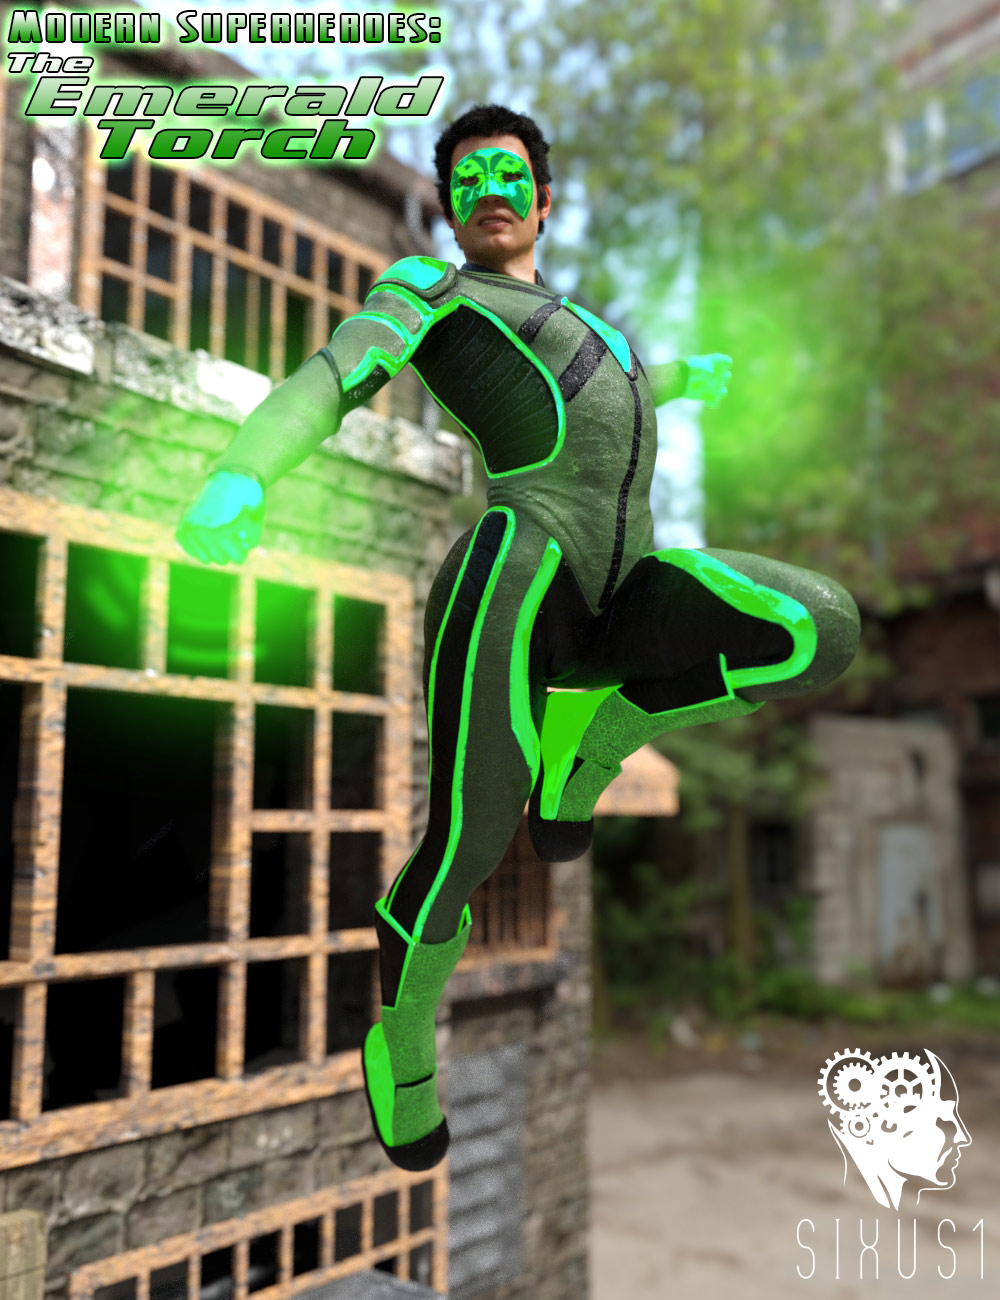 Modern Superheroes: The Emerald Torch for G8M